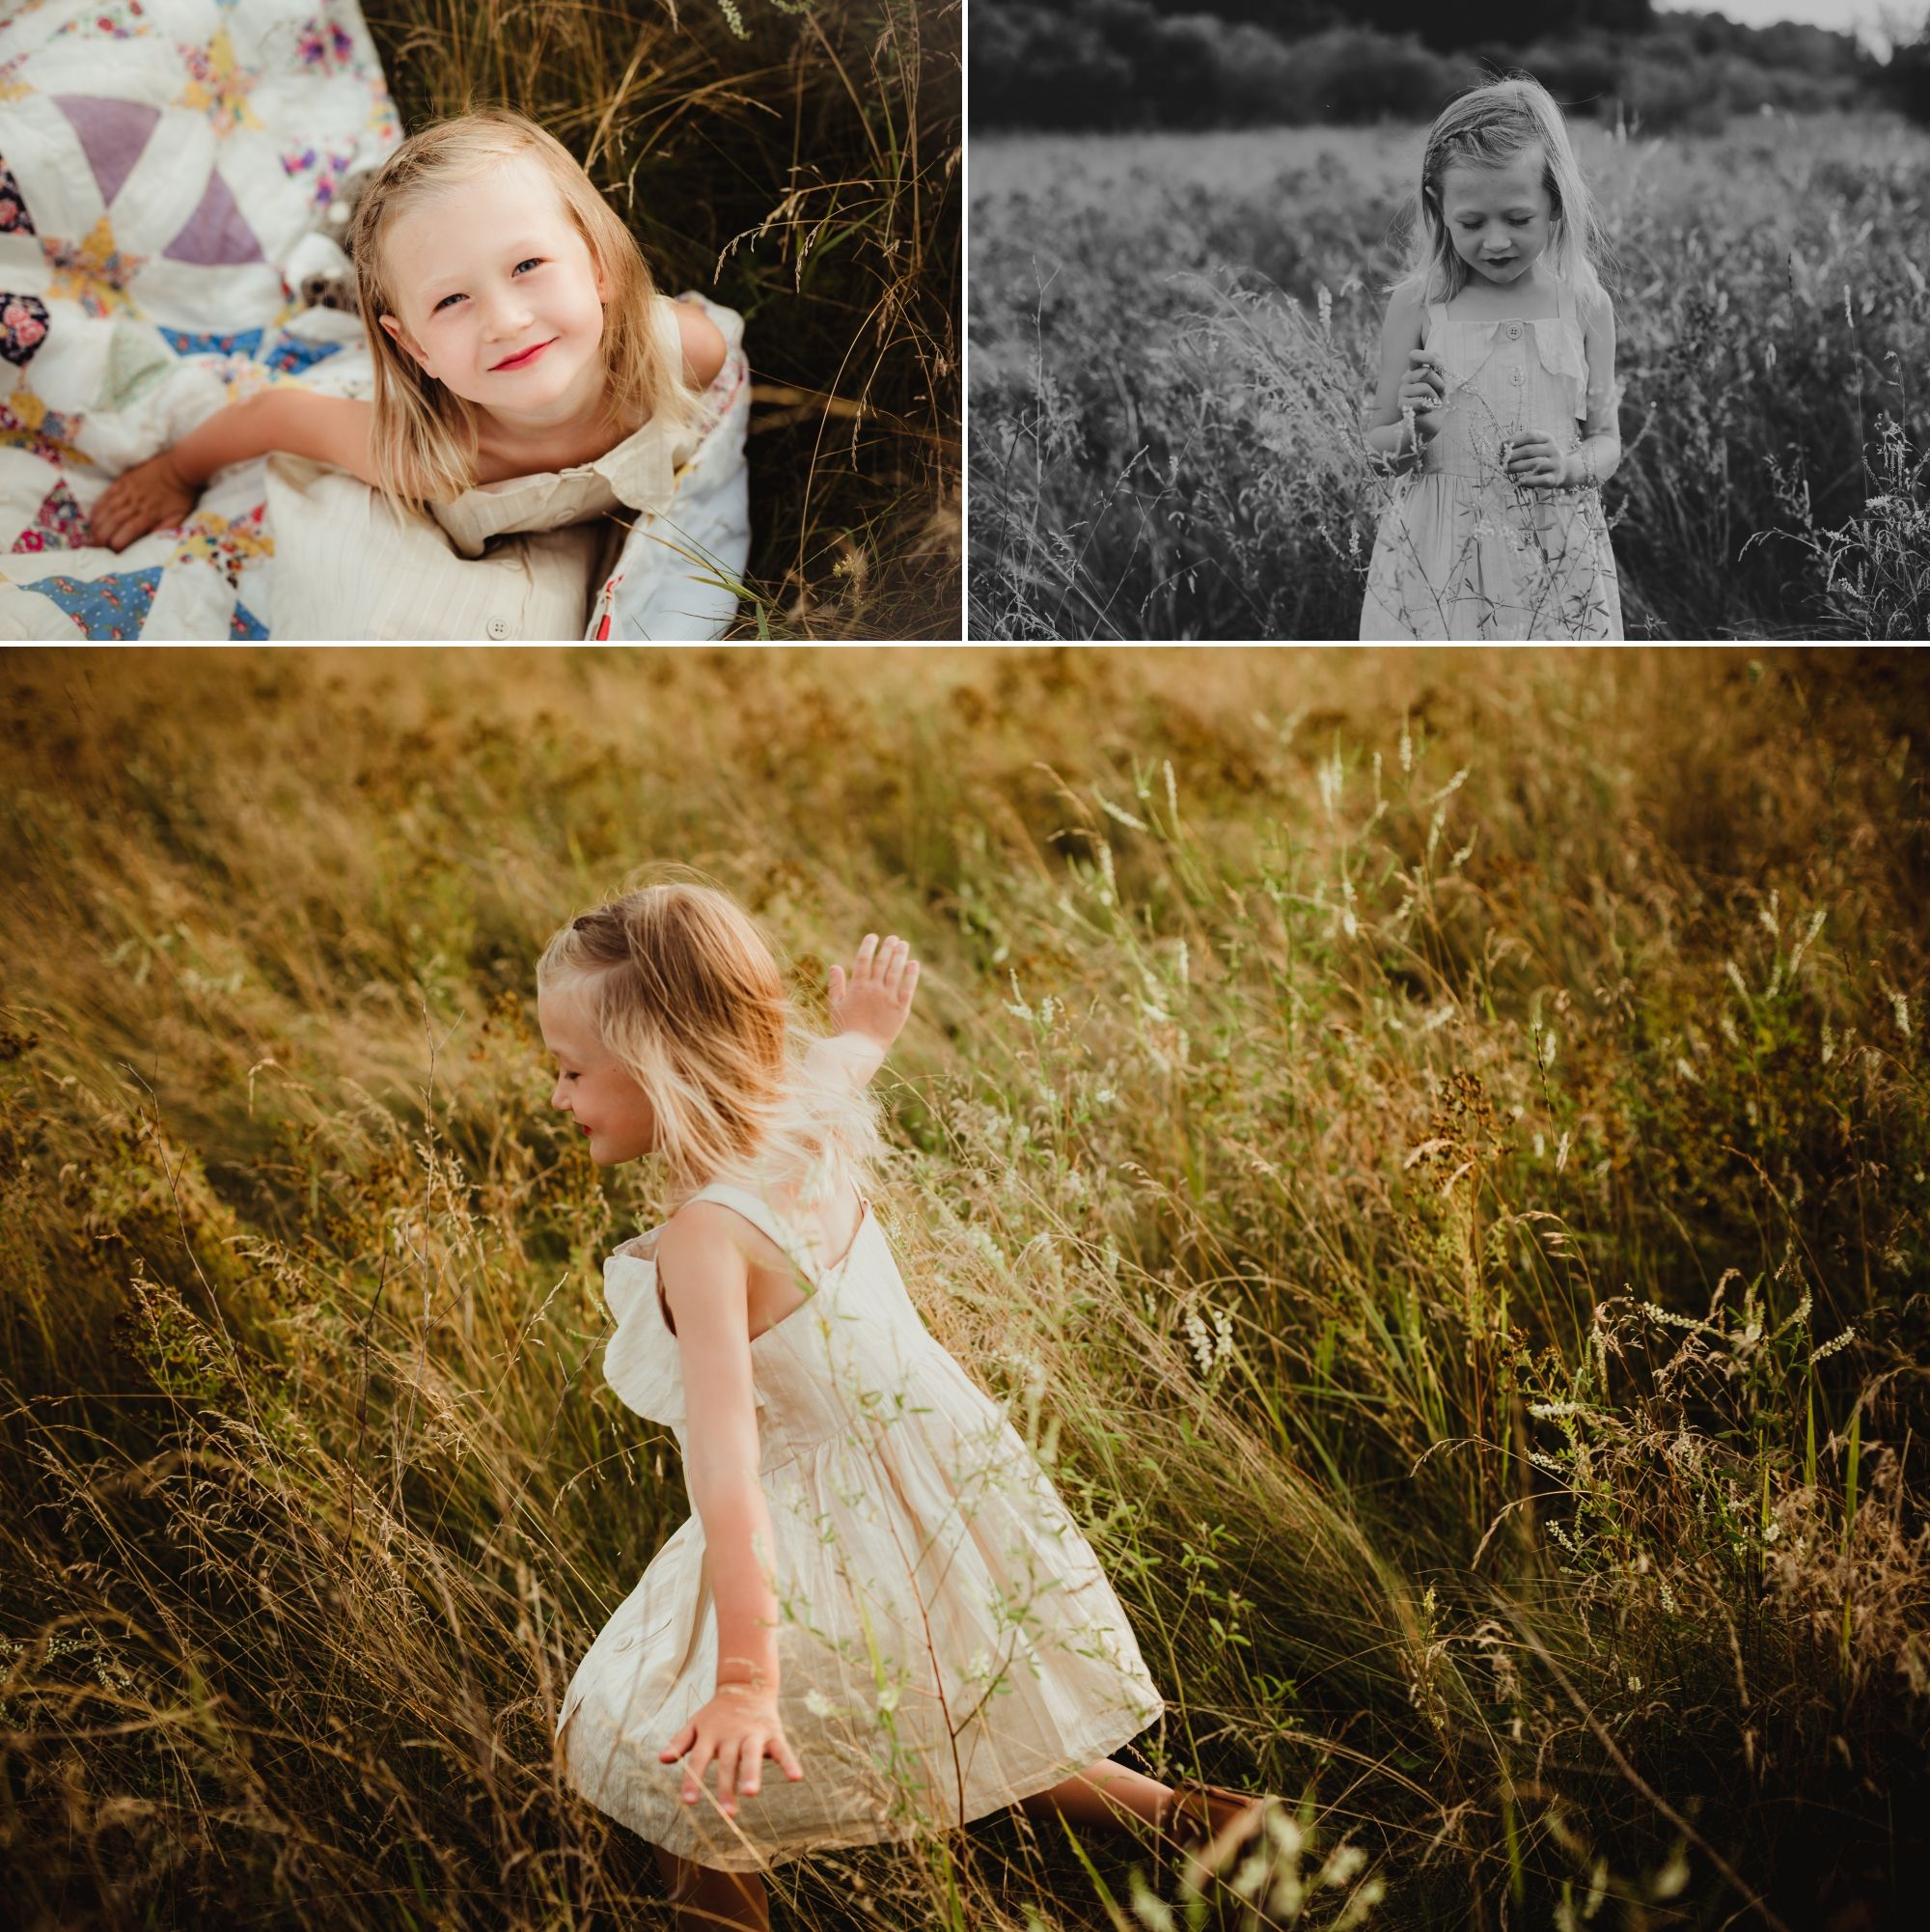 Collage of young blonde girl smiling, sitting, and a running through a gold and green field.